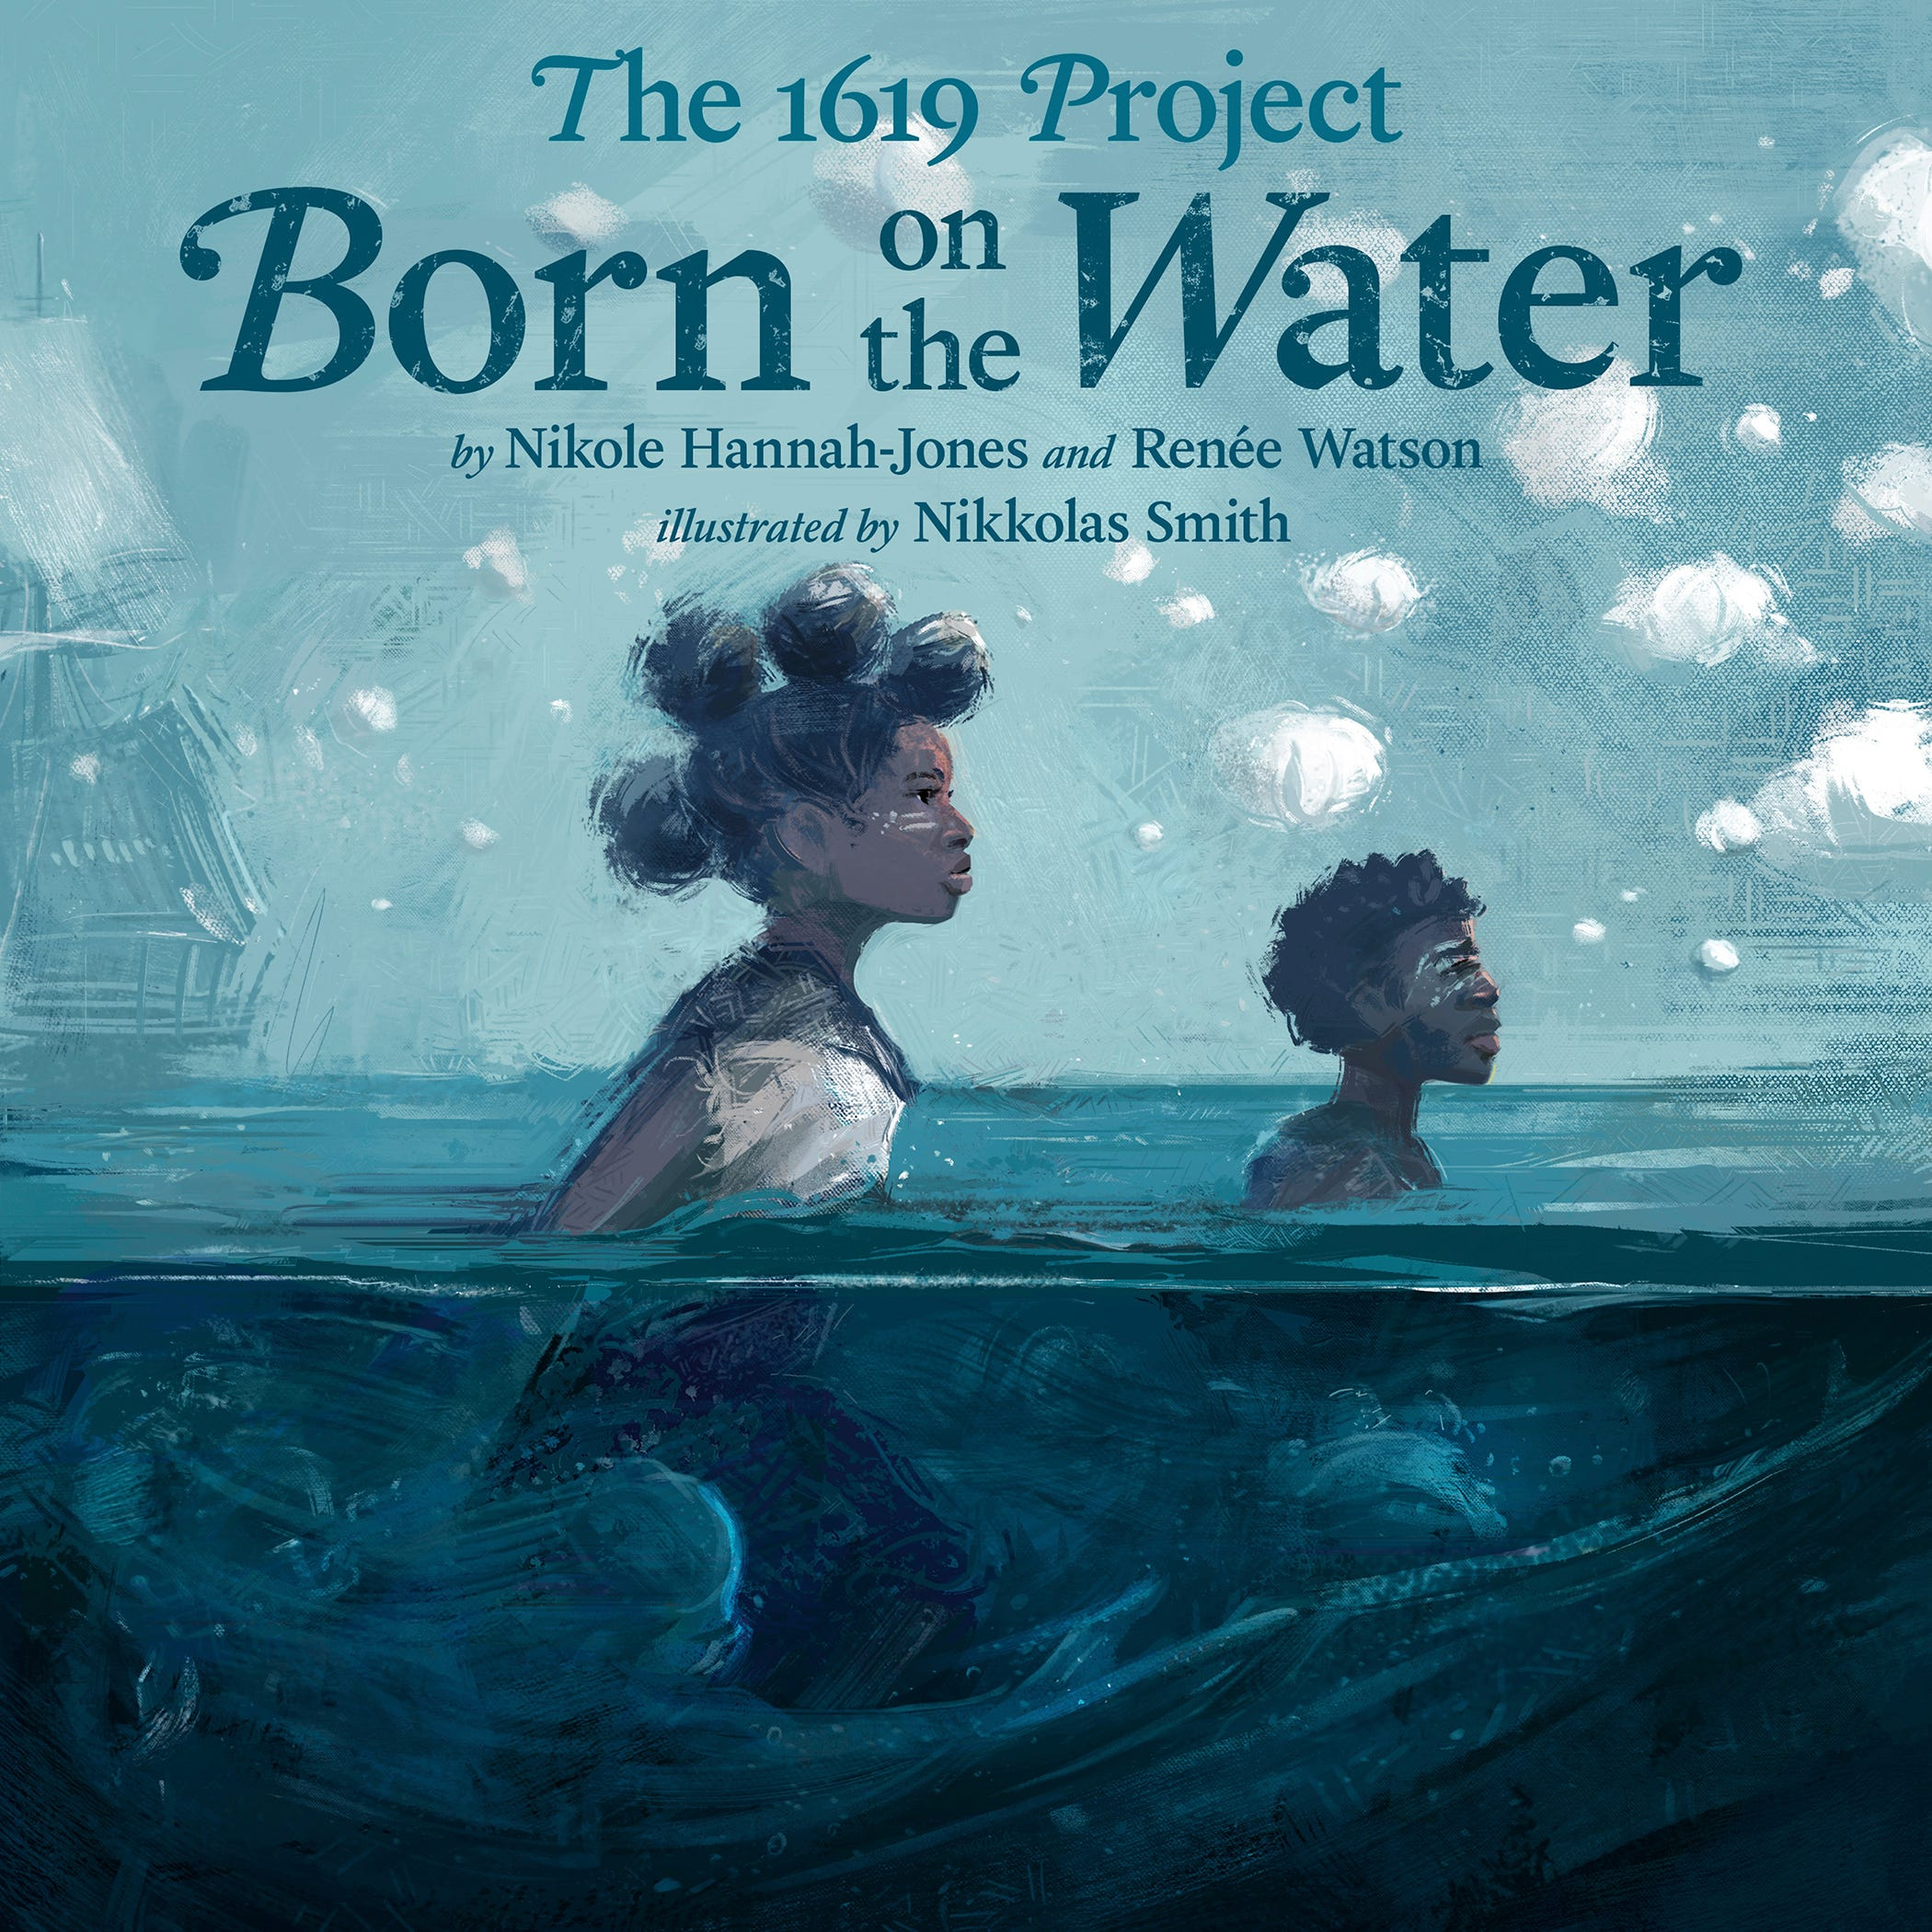 Nikole Hannah-Jones and Renée Watson to Release Children's Book Based on The 1619 Project